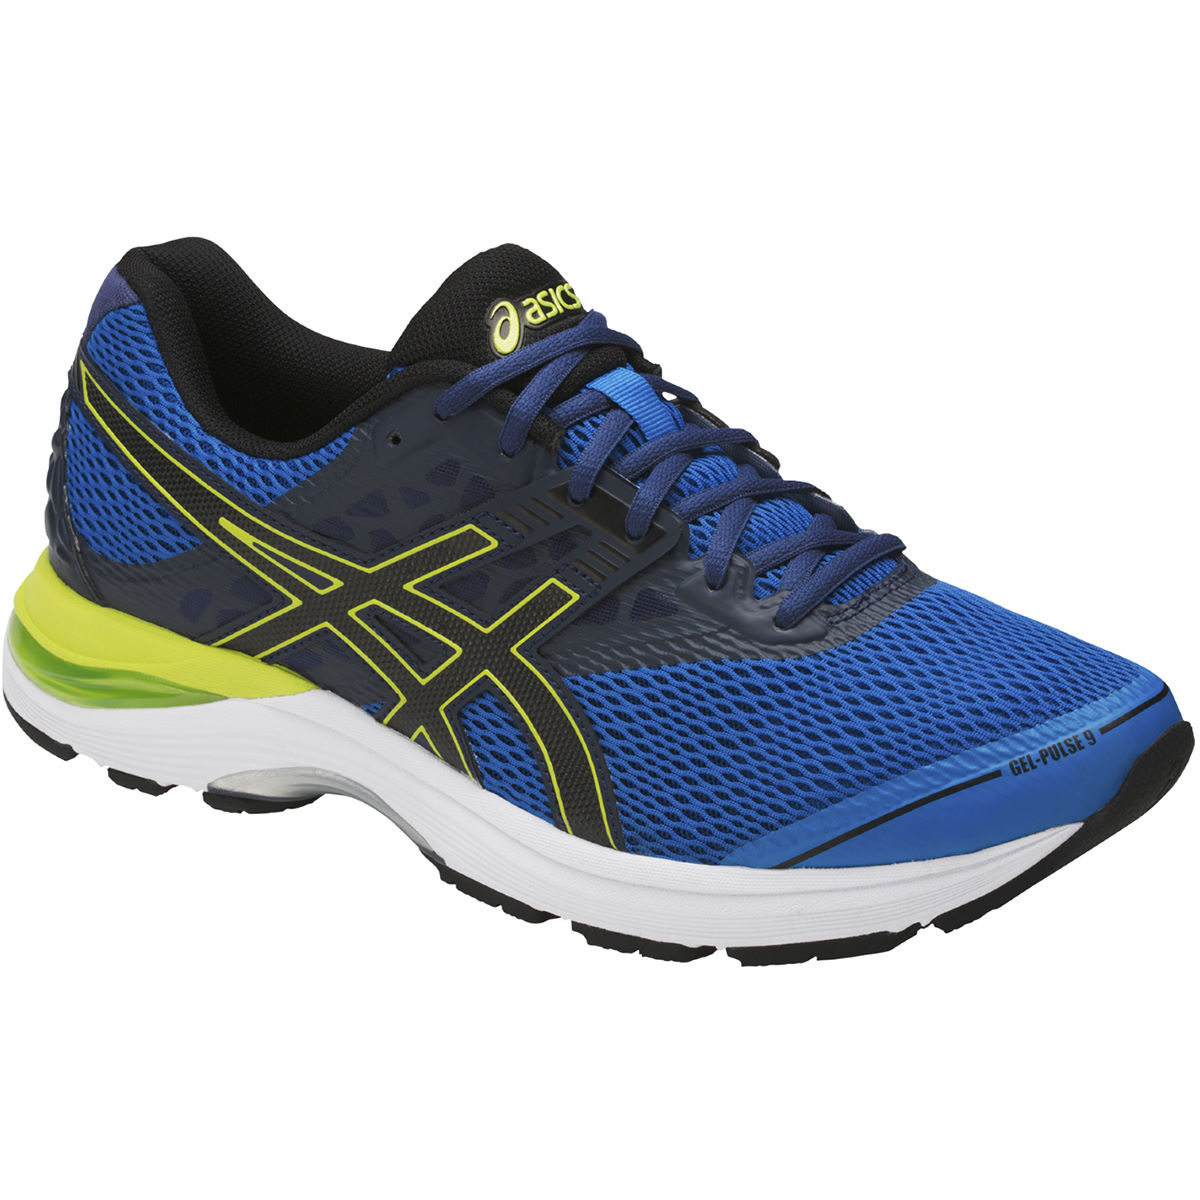 Chaussures Asics Gel-Pulse 9 - UK 11 Directoire Blue/Blac